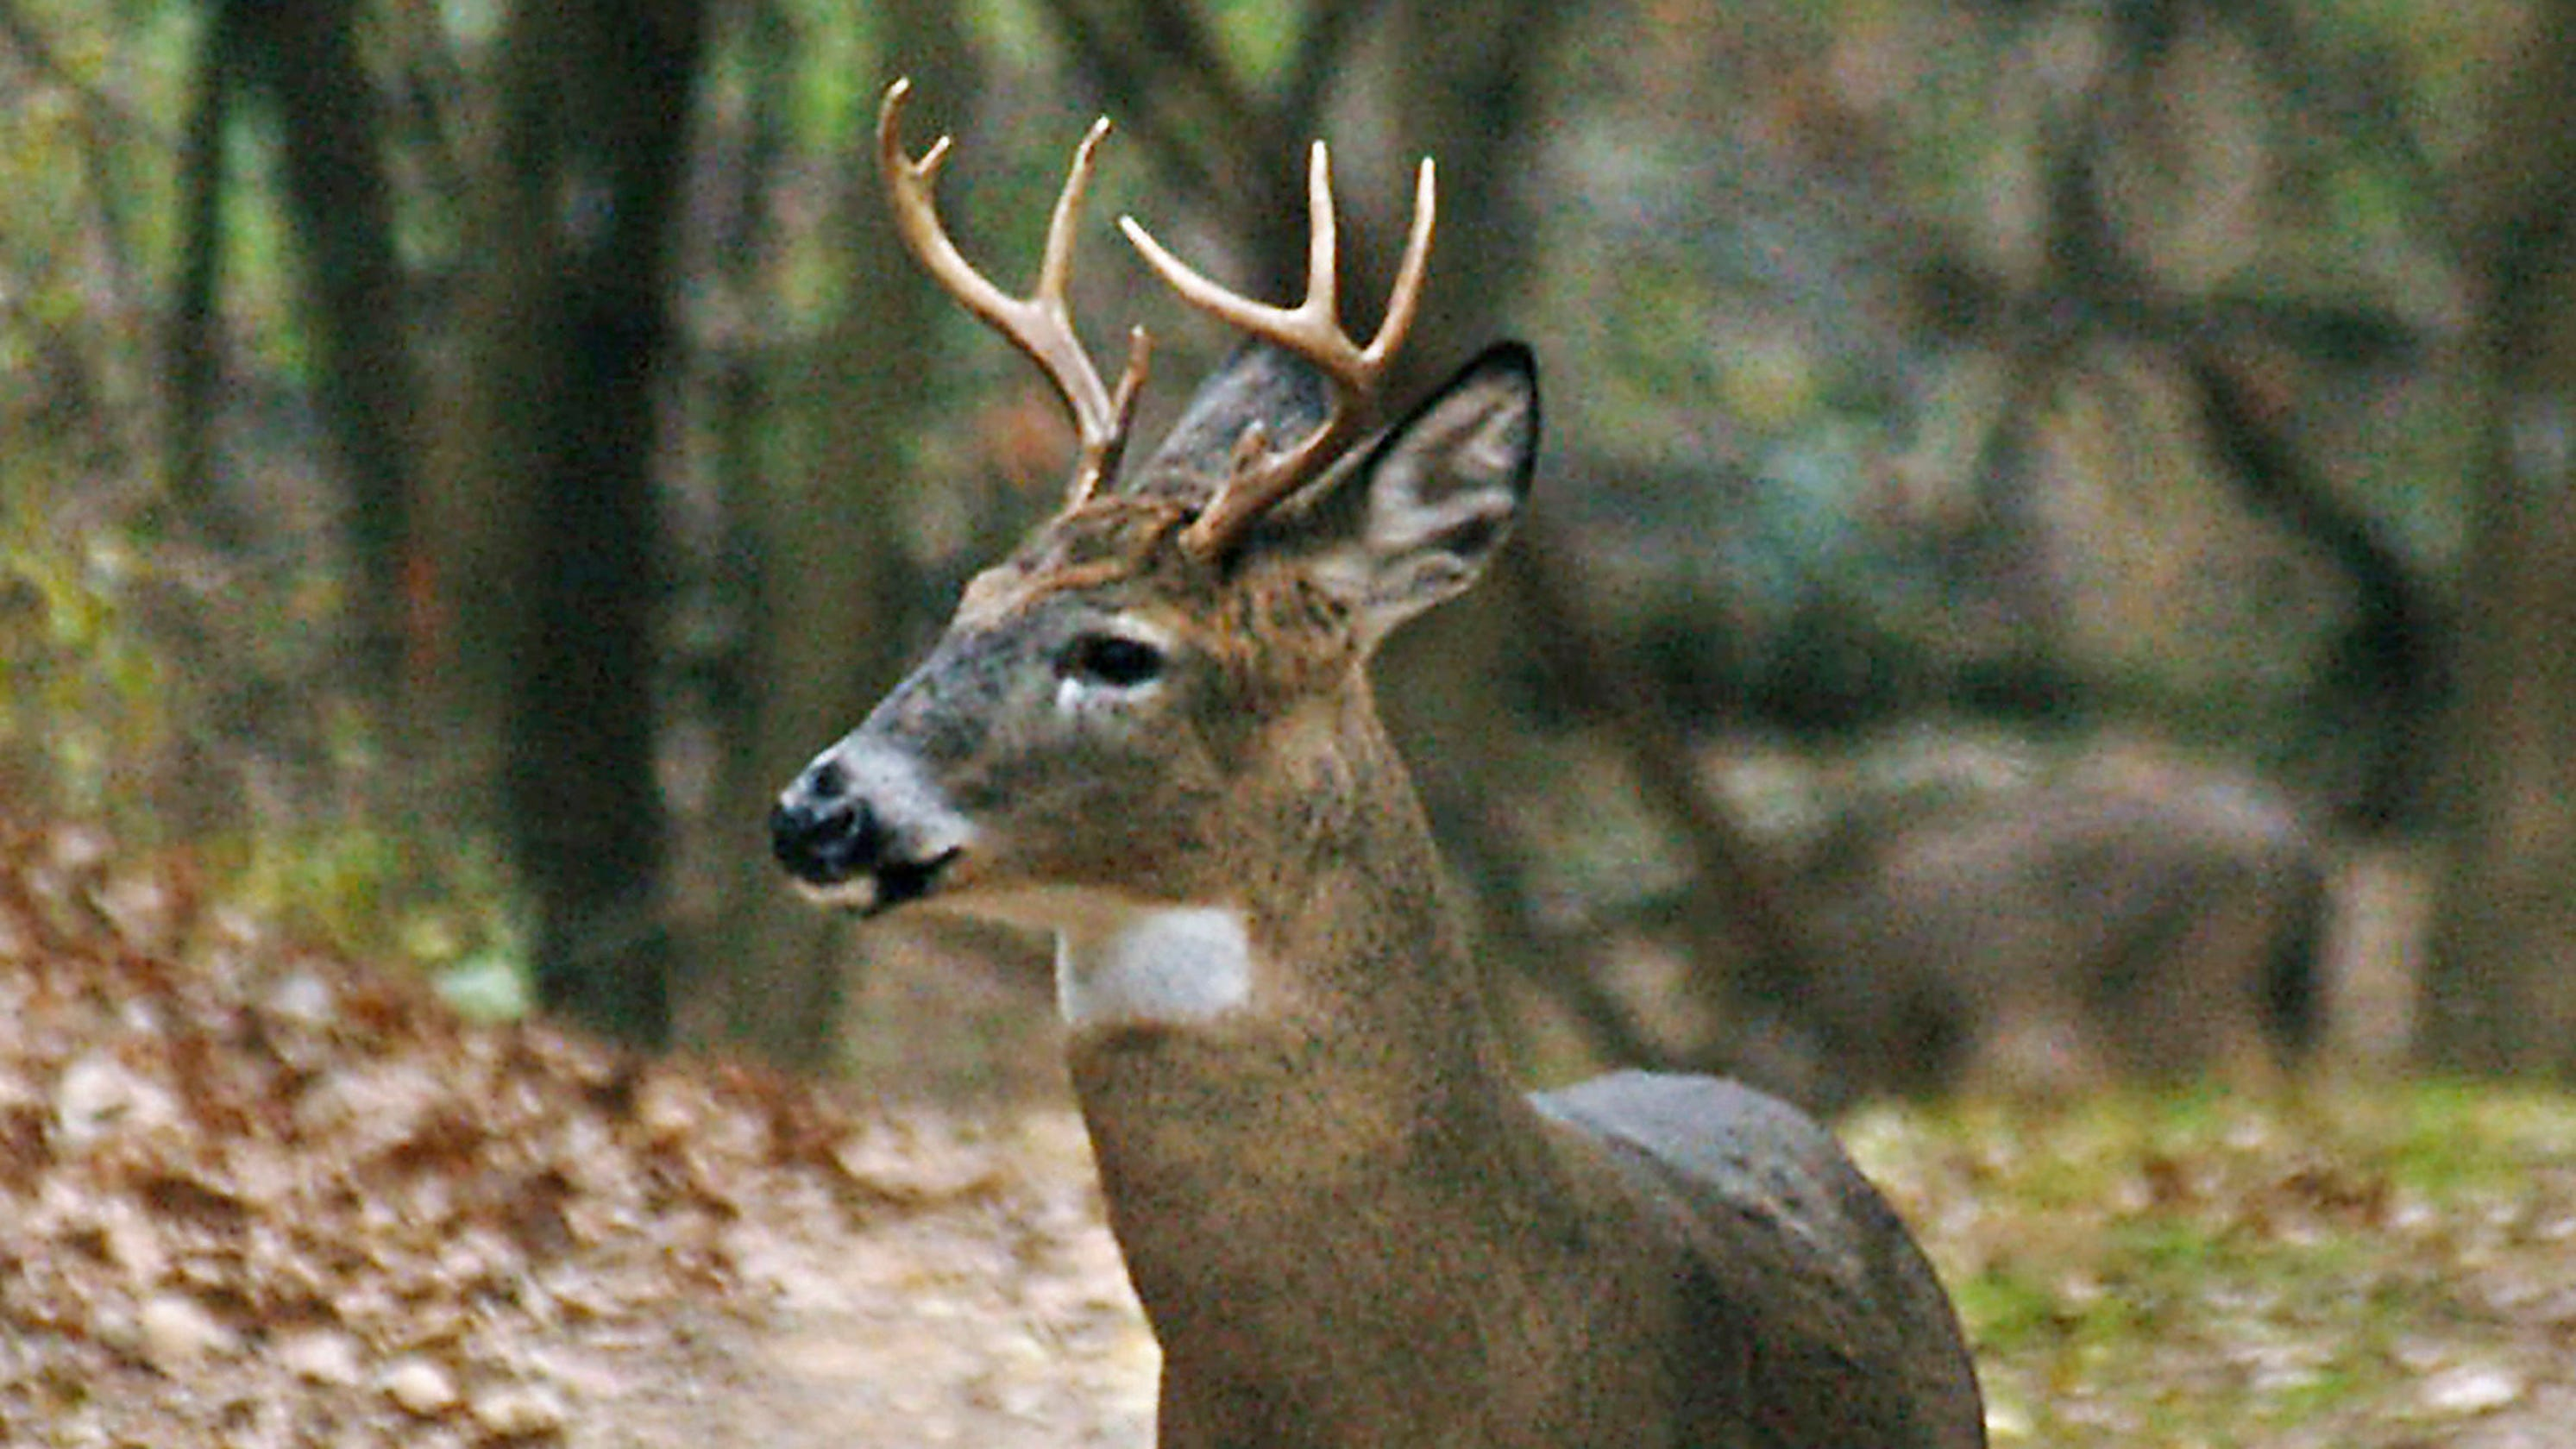 'Zombie' deer disease is in 24 states and thousands of infected deer are eaten each year, expert warns - USA TODAY image